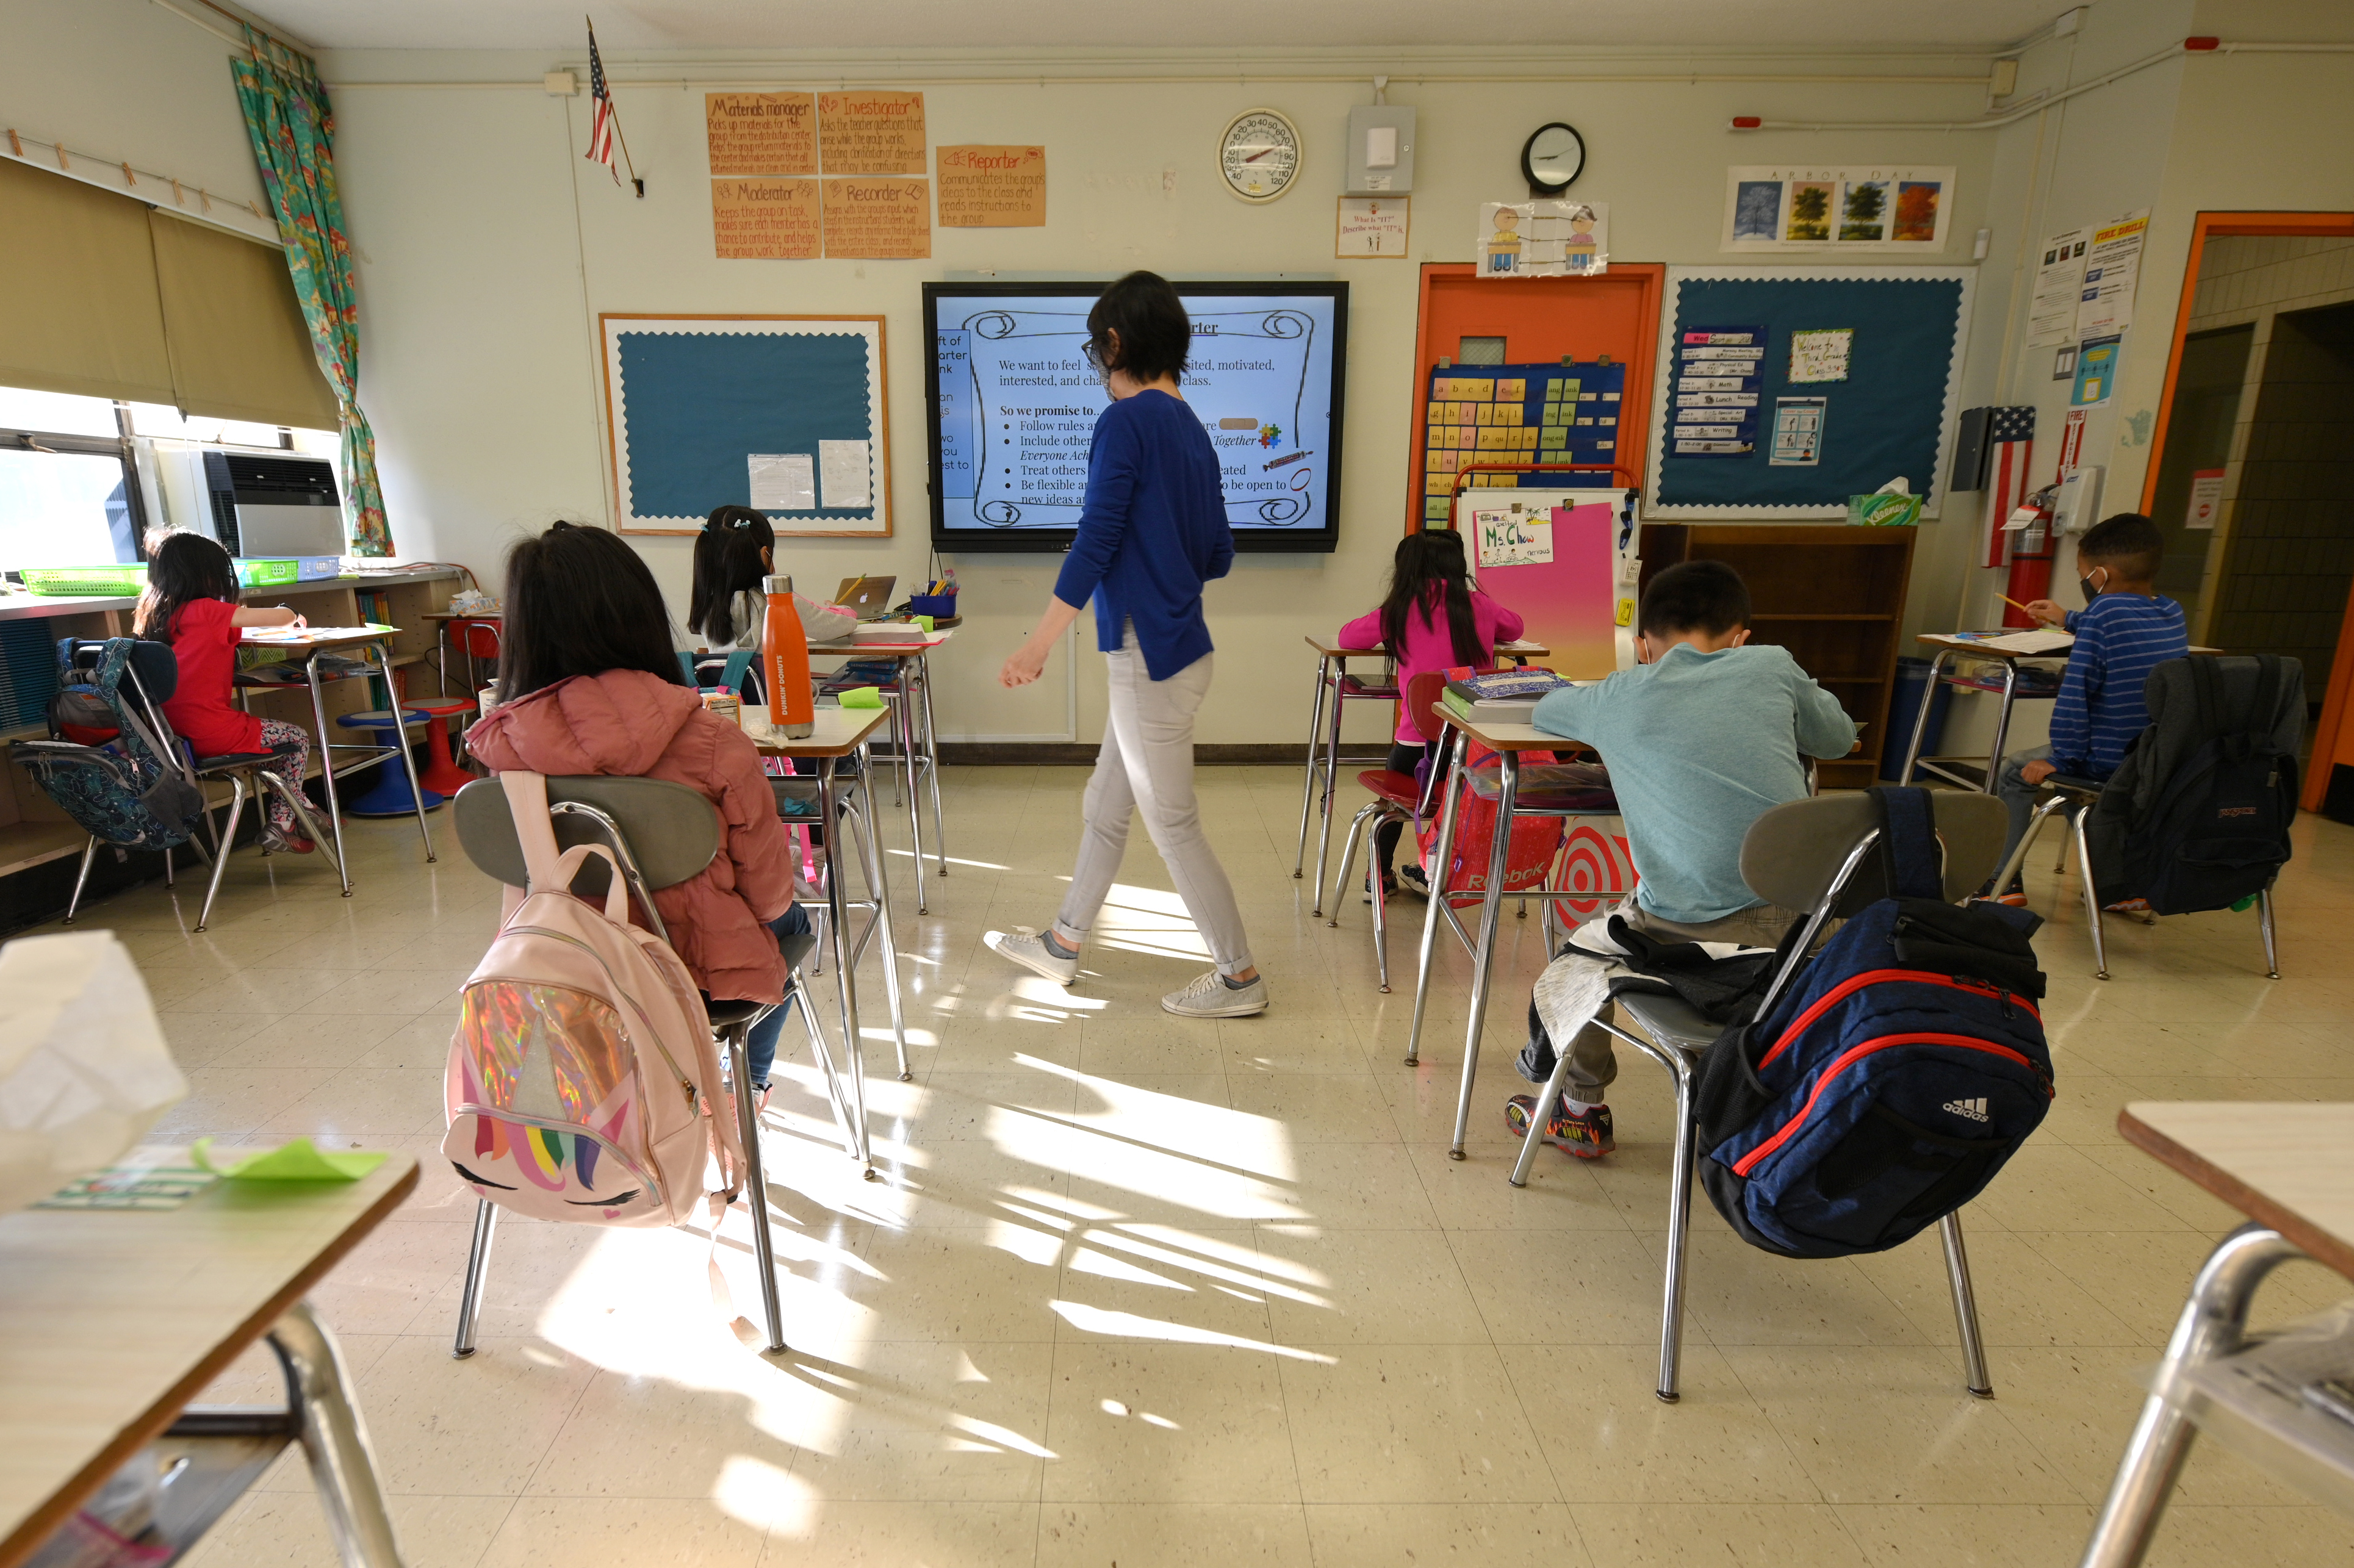 Students sit at their desks in a classroom during in-person instruction as their teacher walks through the room. There is a ray of light reflecting off of the floor of the classroom in between two rows of desks.